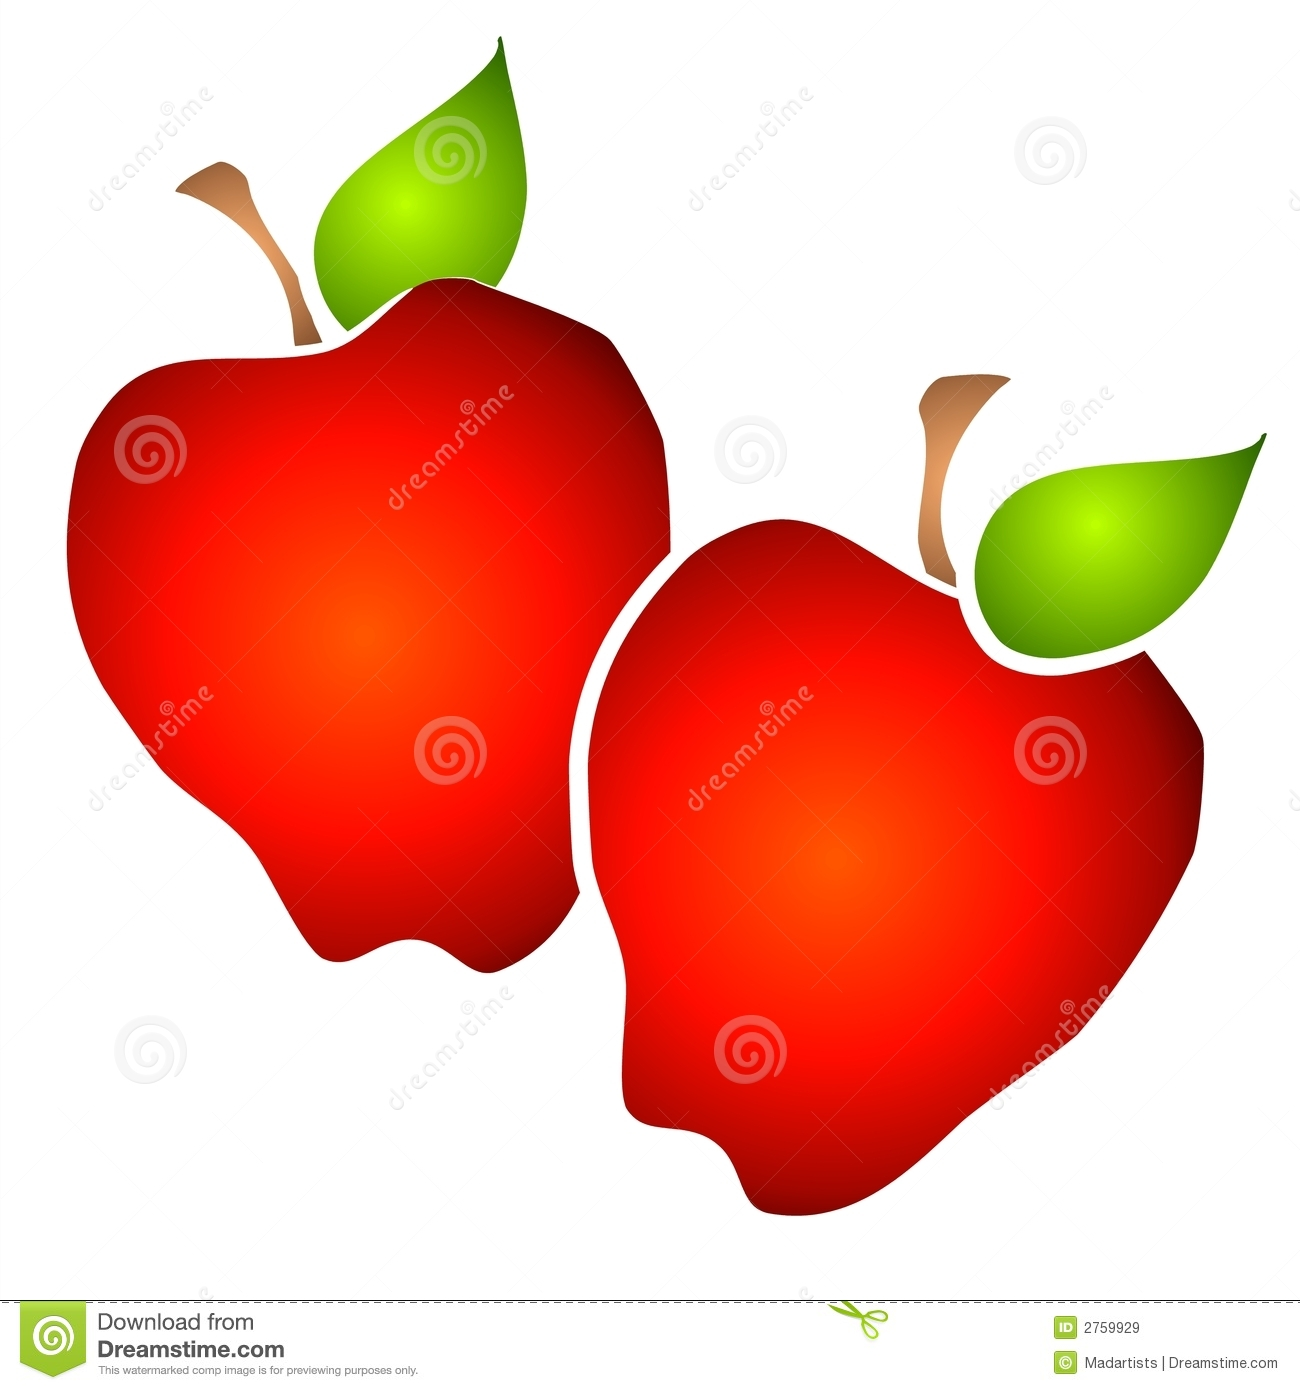 Royalty free apple clipart.